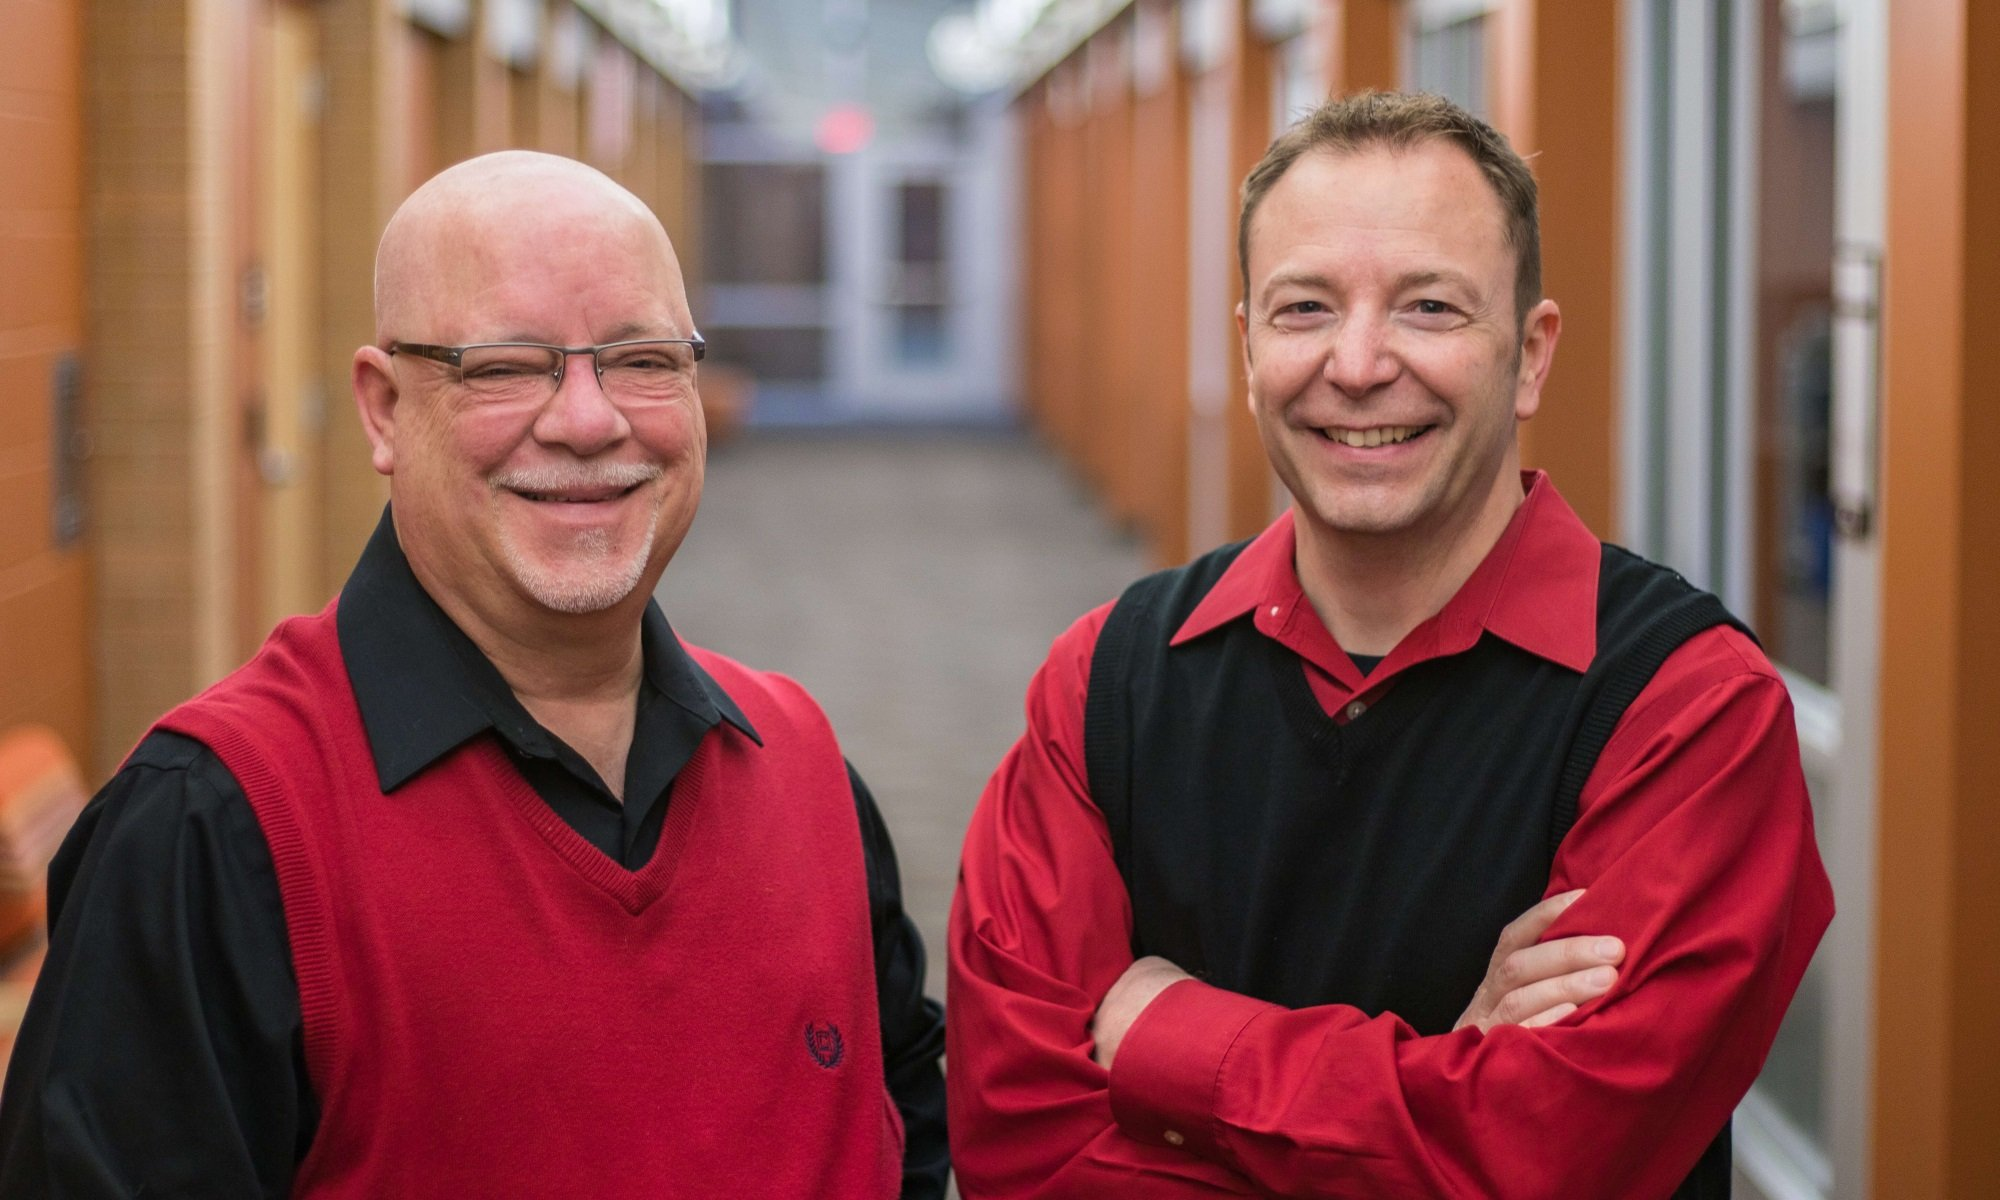 Concordia professors to lead 'Man Up' series